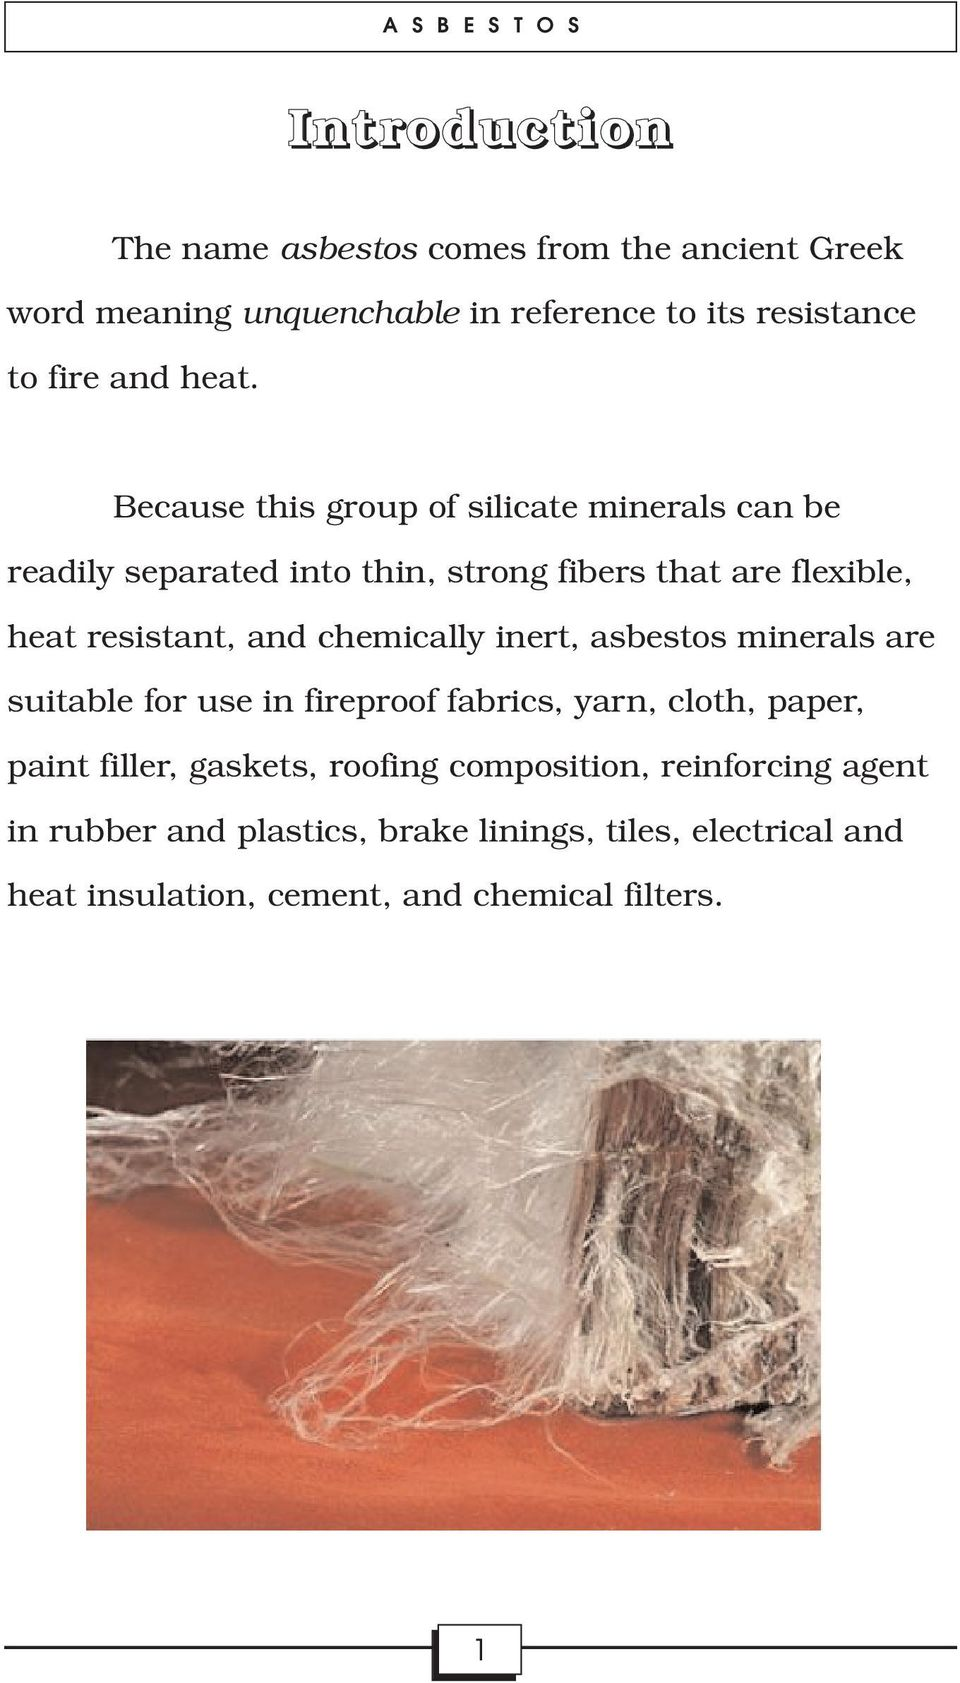 chemically inert, asbestos minerals are suitable for use in fireproof fabrics, yarn, cloth, paper, paint filler, gaskets, roofing